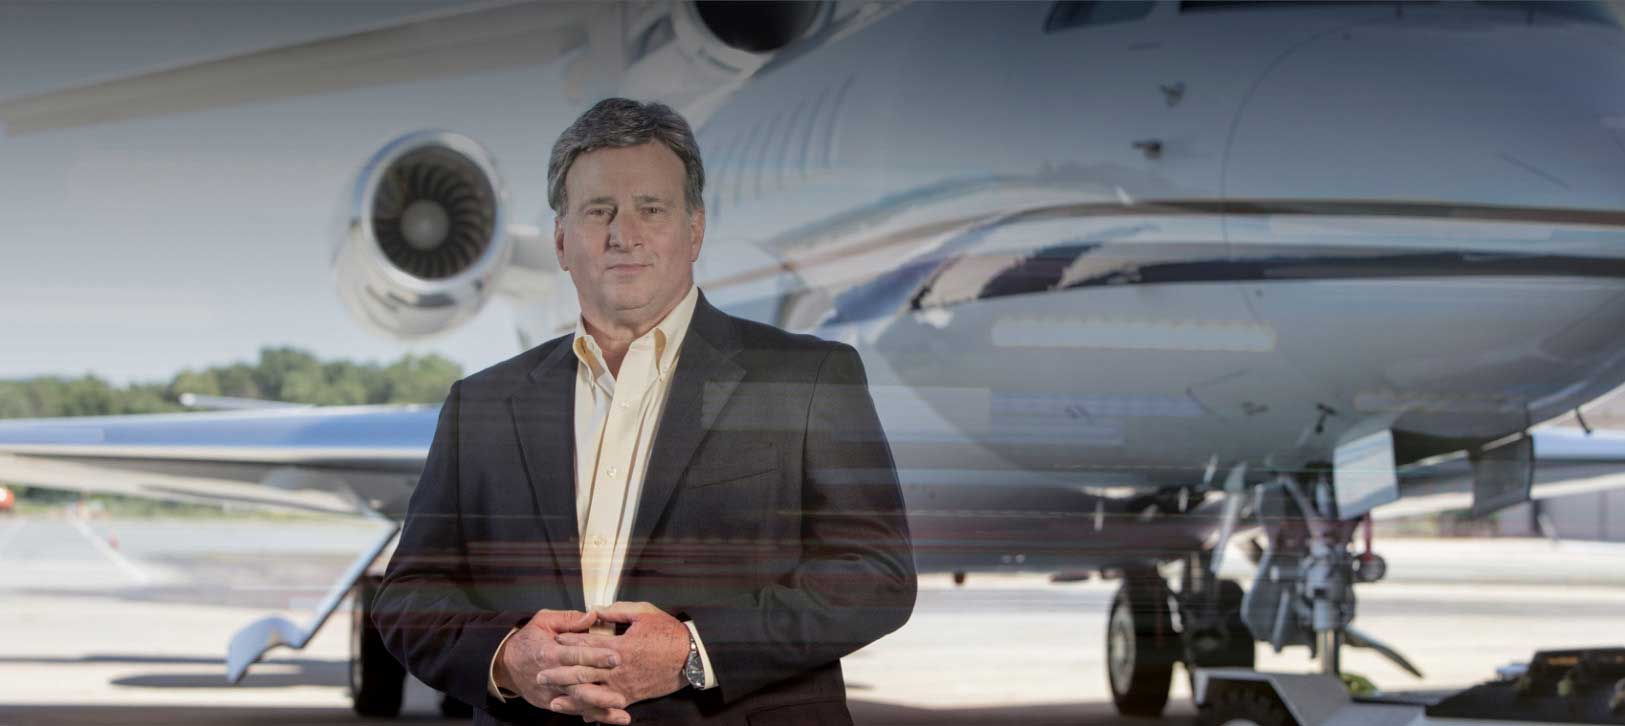 Dave Labrozzi • Chief Operating Officer • Global Jet Capital